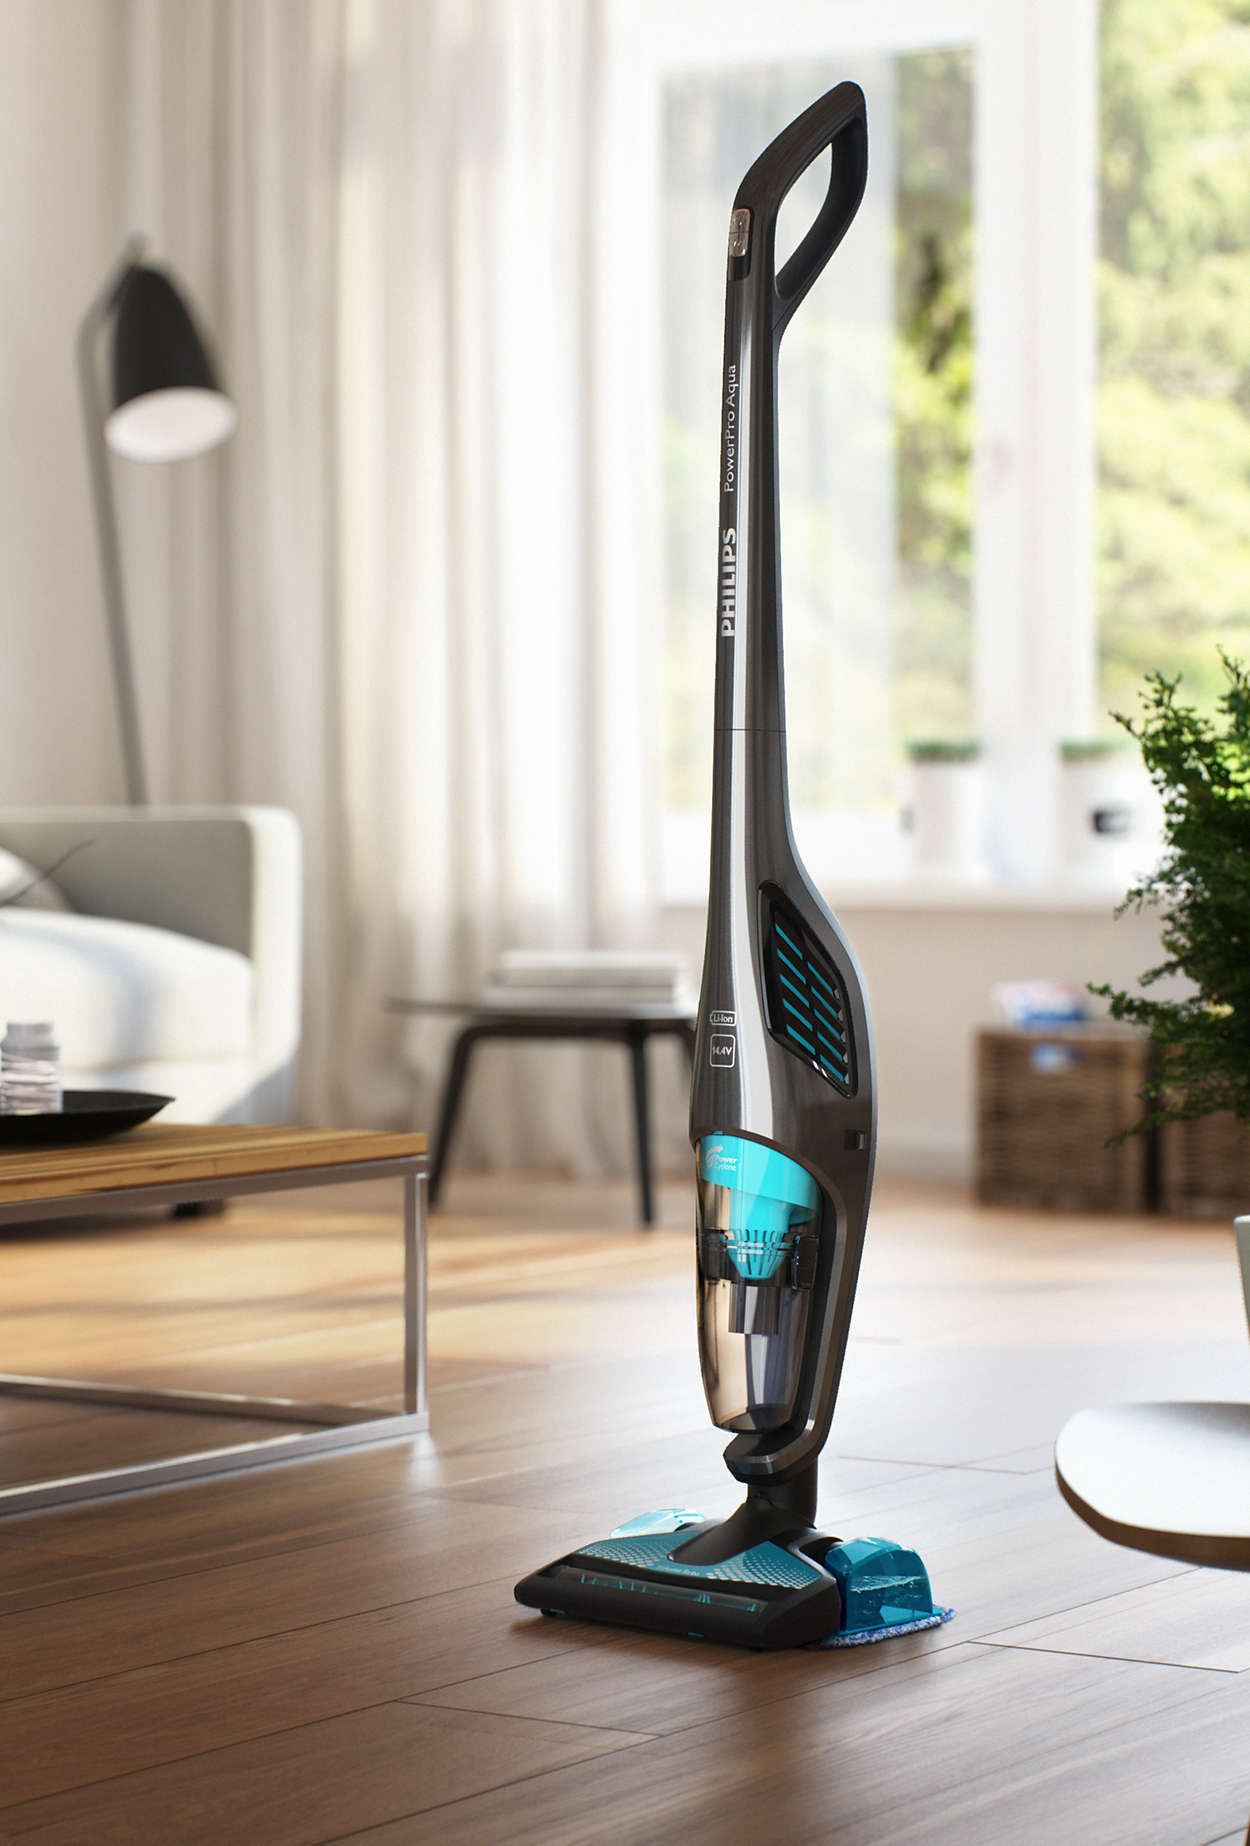 philips powerpro aqua stick vacuum cleaner upright. Black Bedroom Furniture Sets. Home Design Ideas